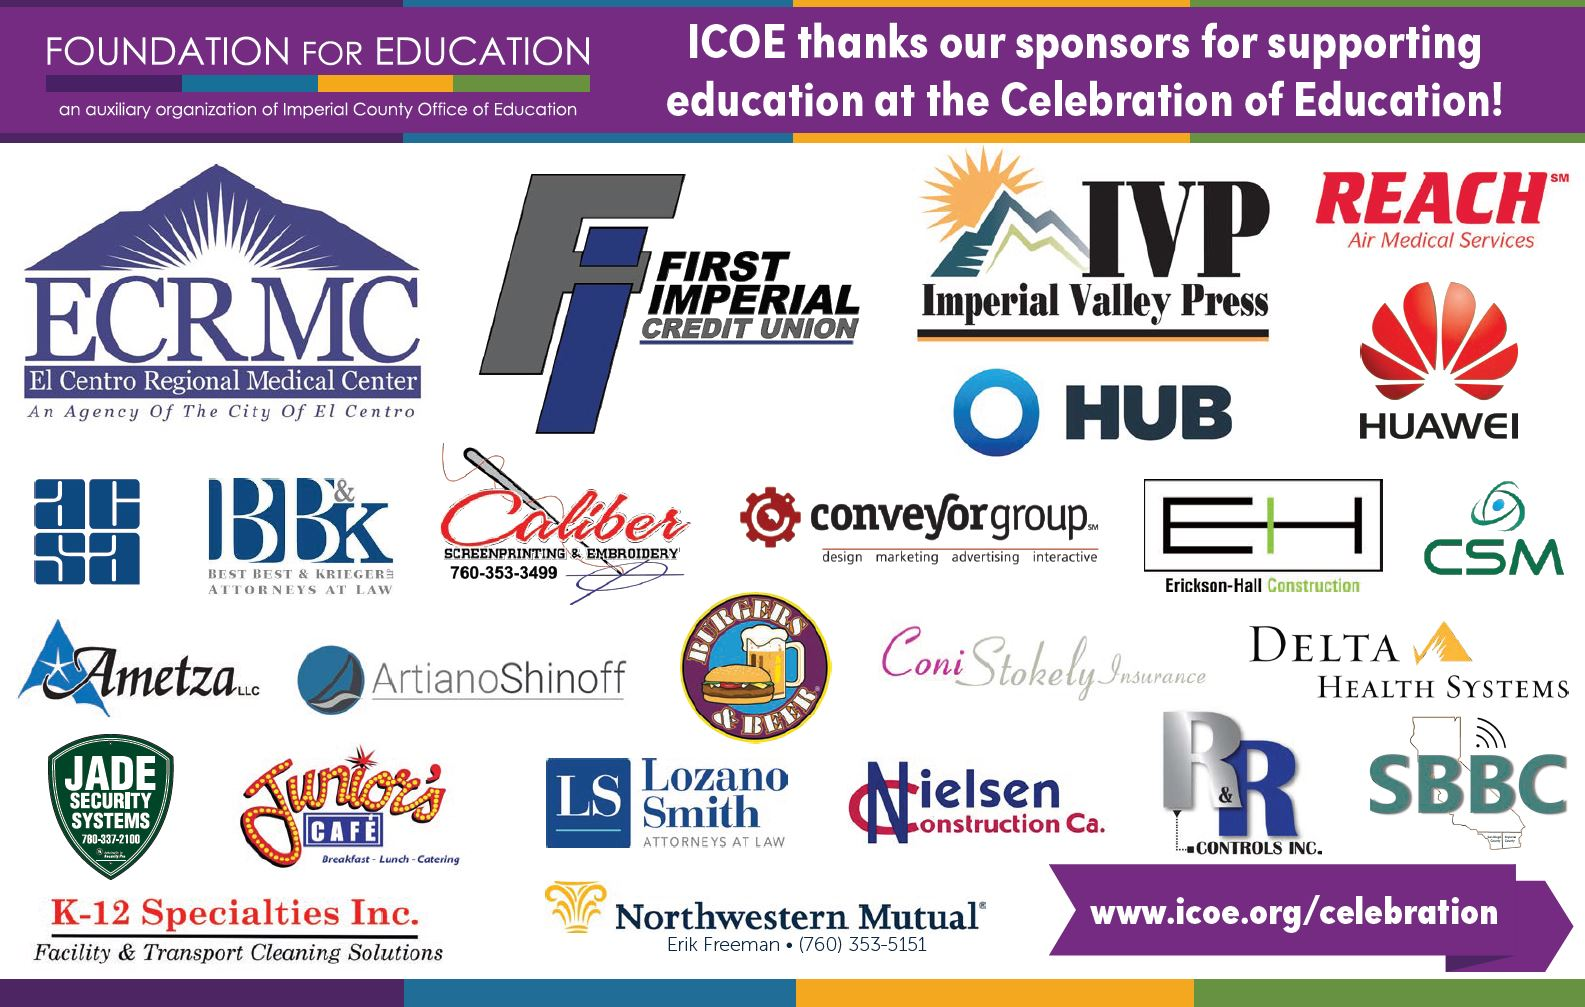 2019 Celebration of Education Sponsors